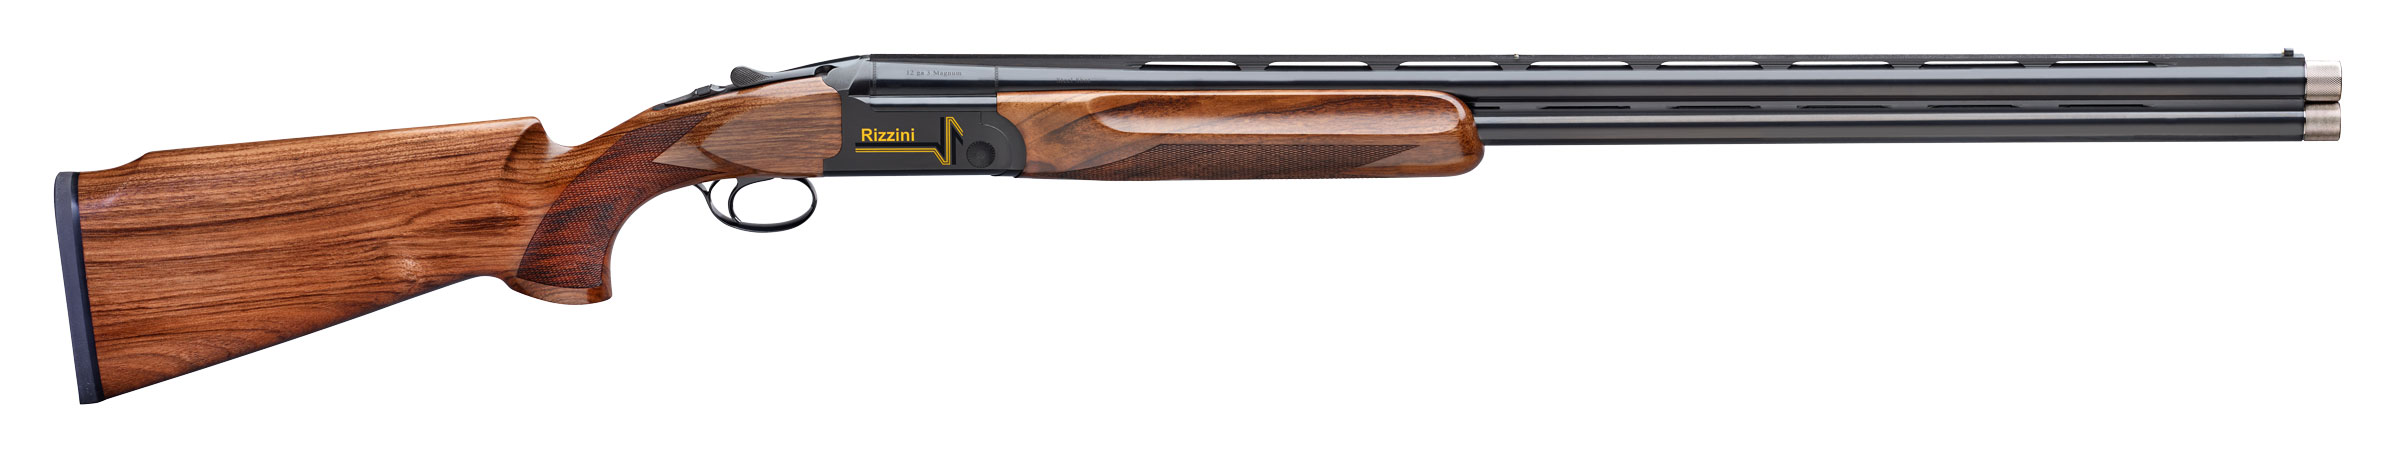 Rizzini V3 Sporter Young & Lady Shots